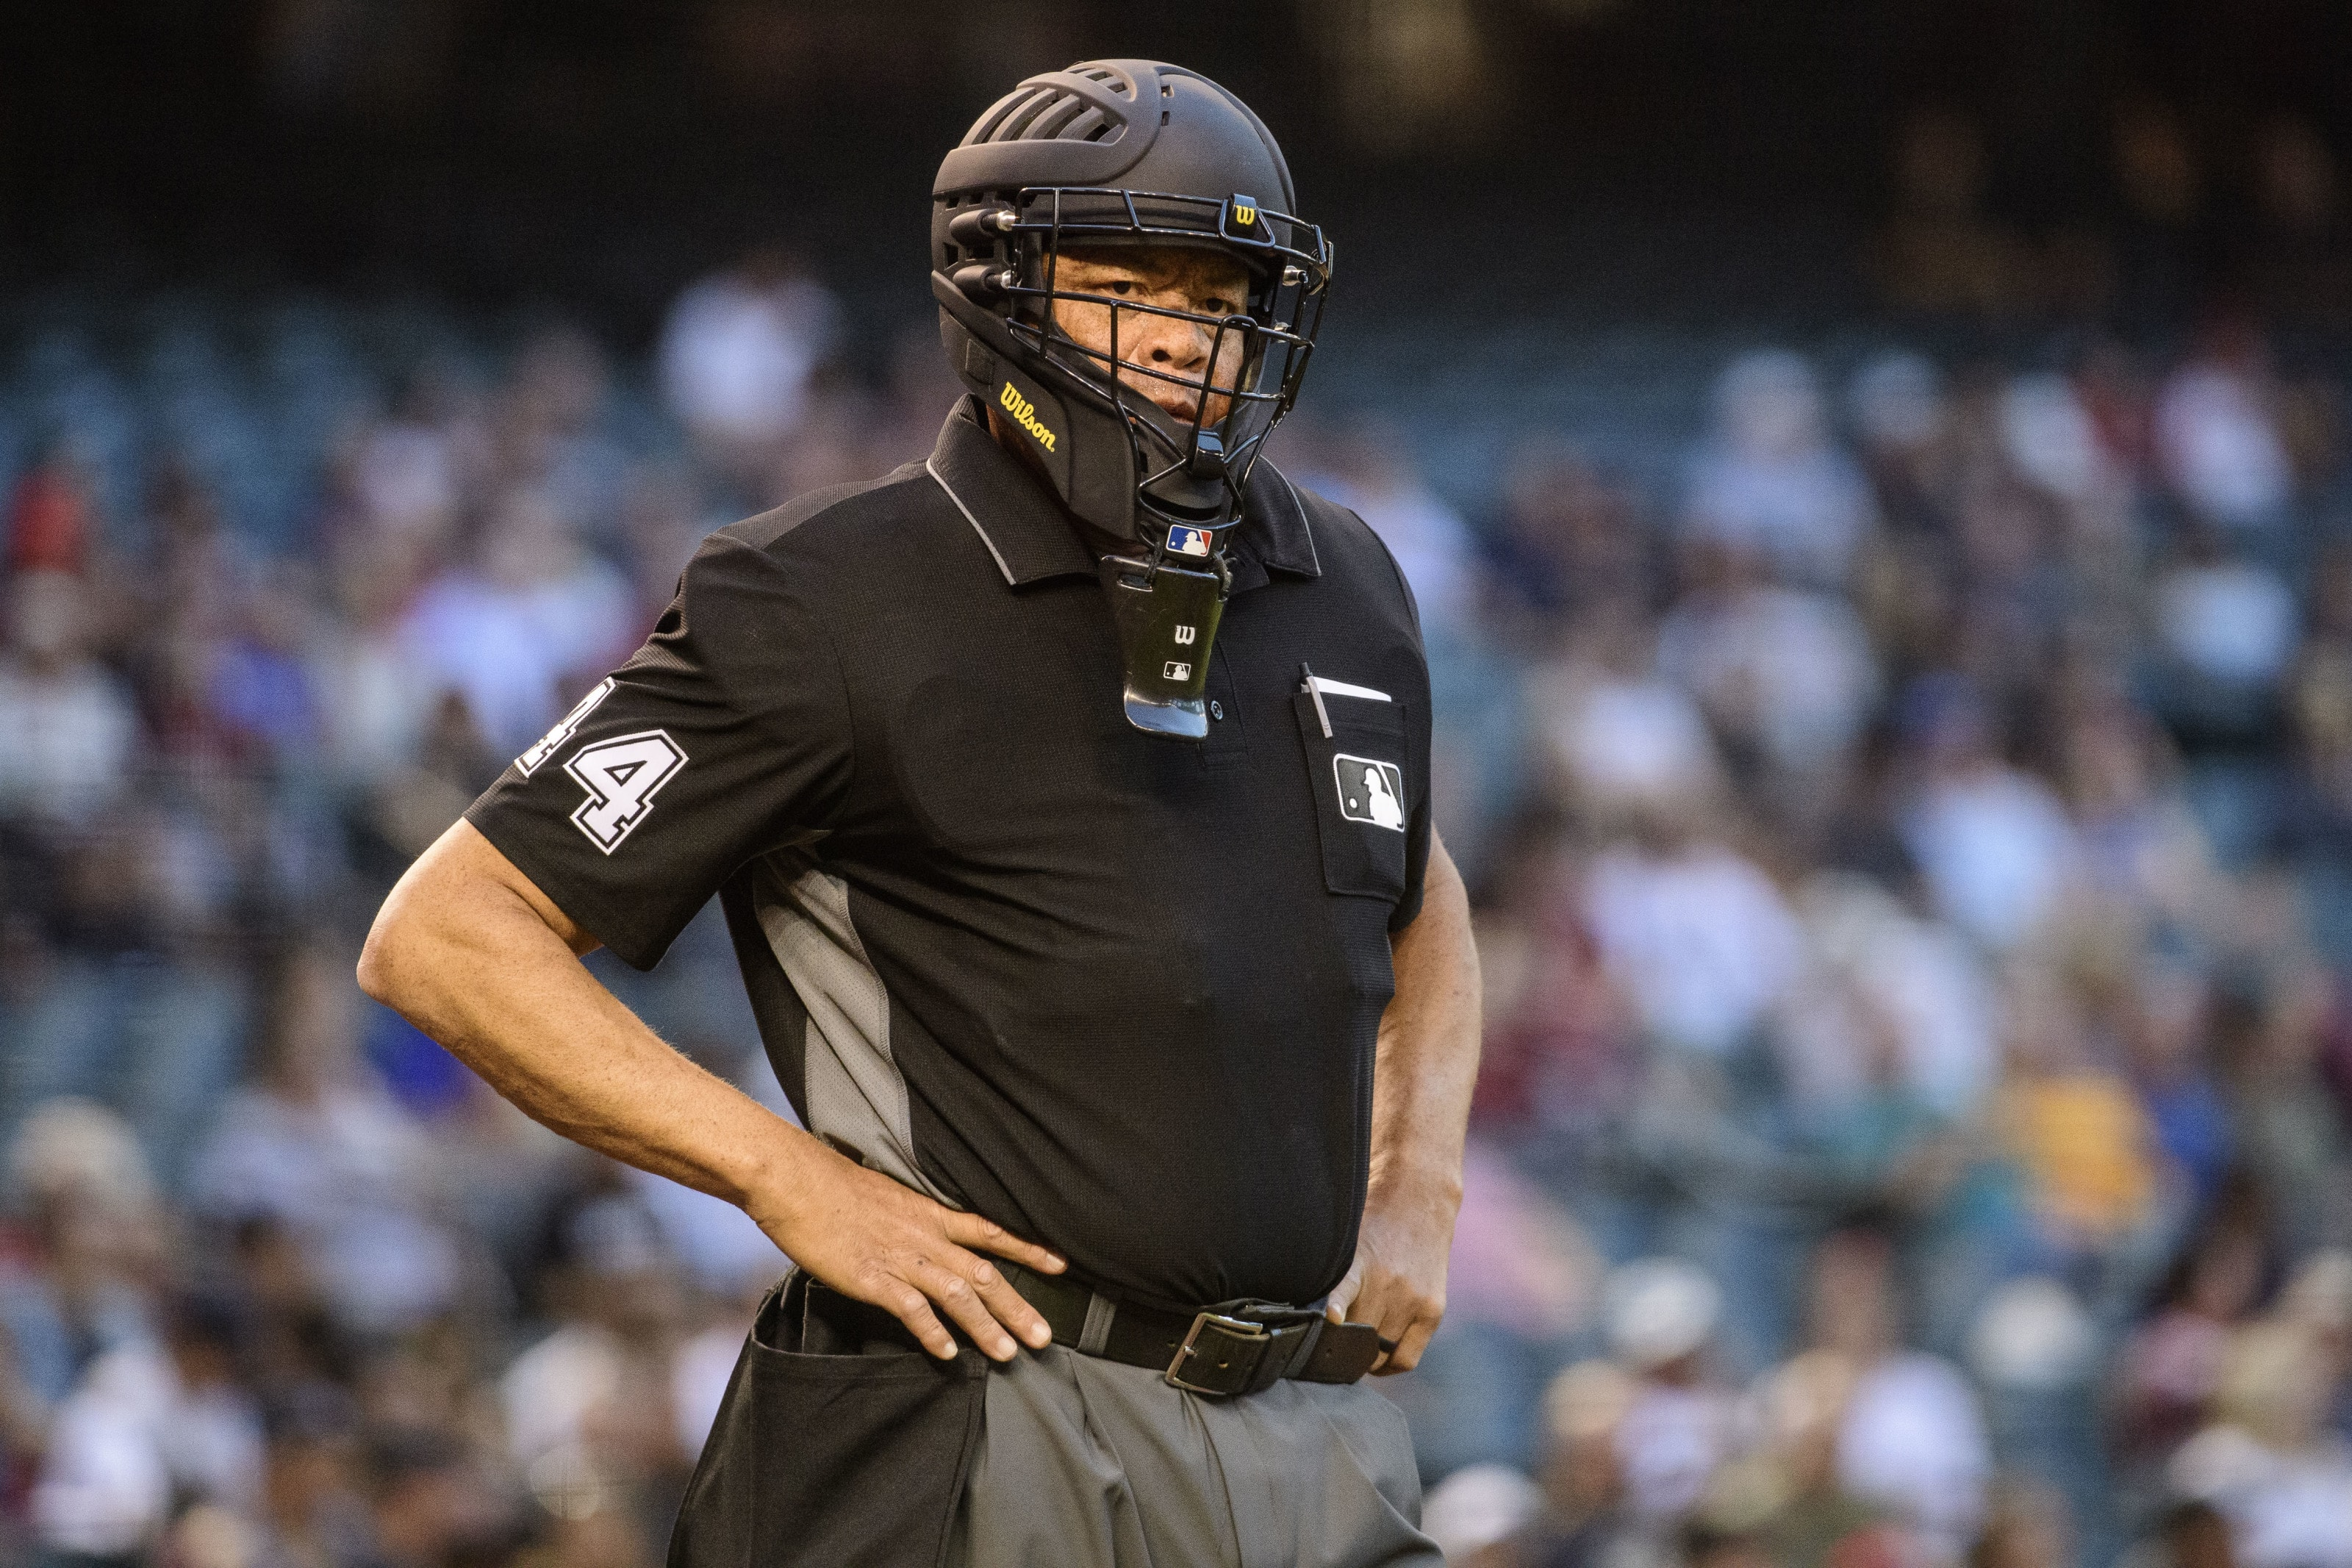 MLB Umpire: Kerwin Danley becomes the first black crew chief